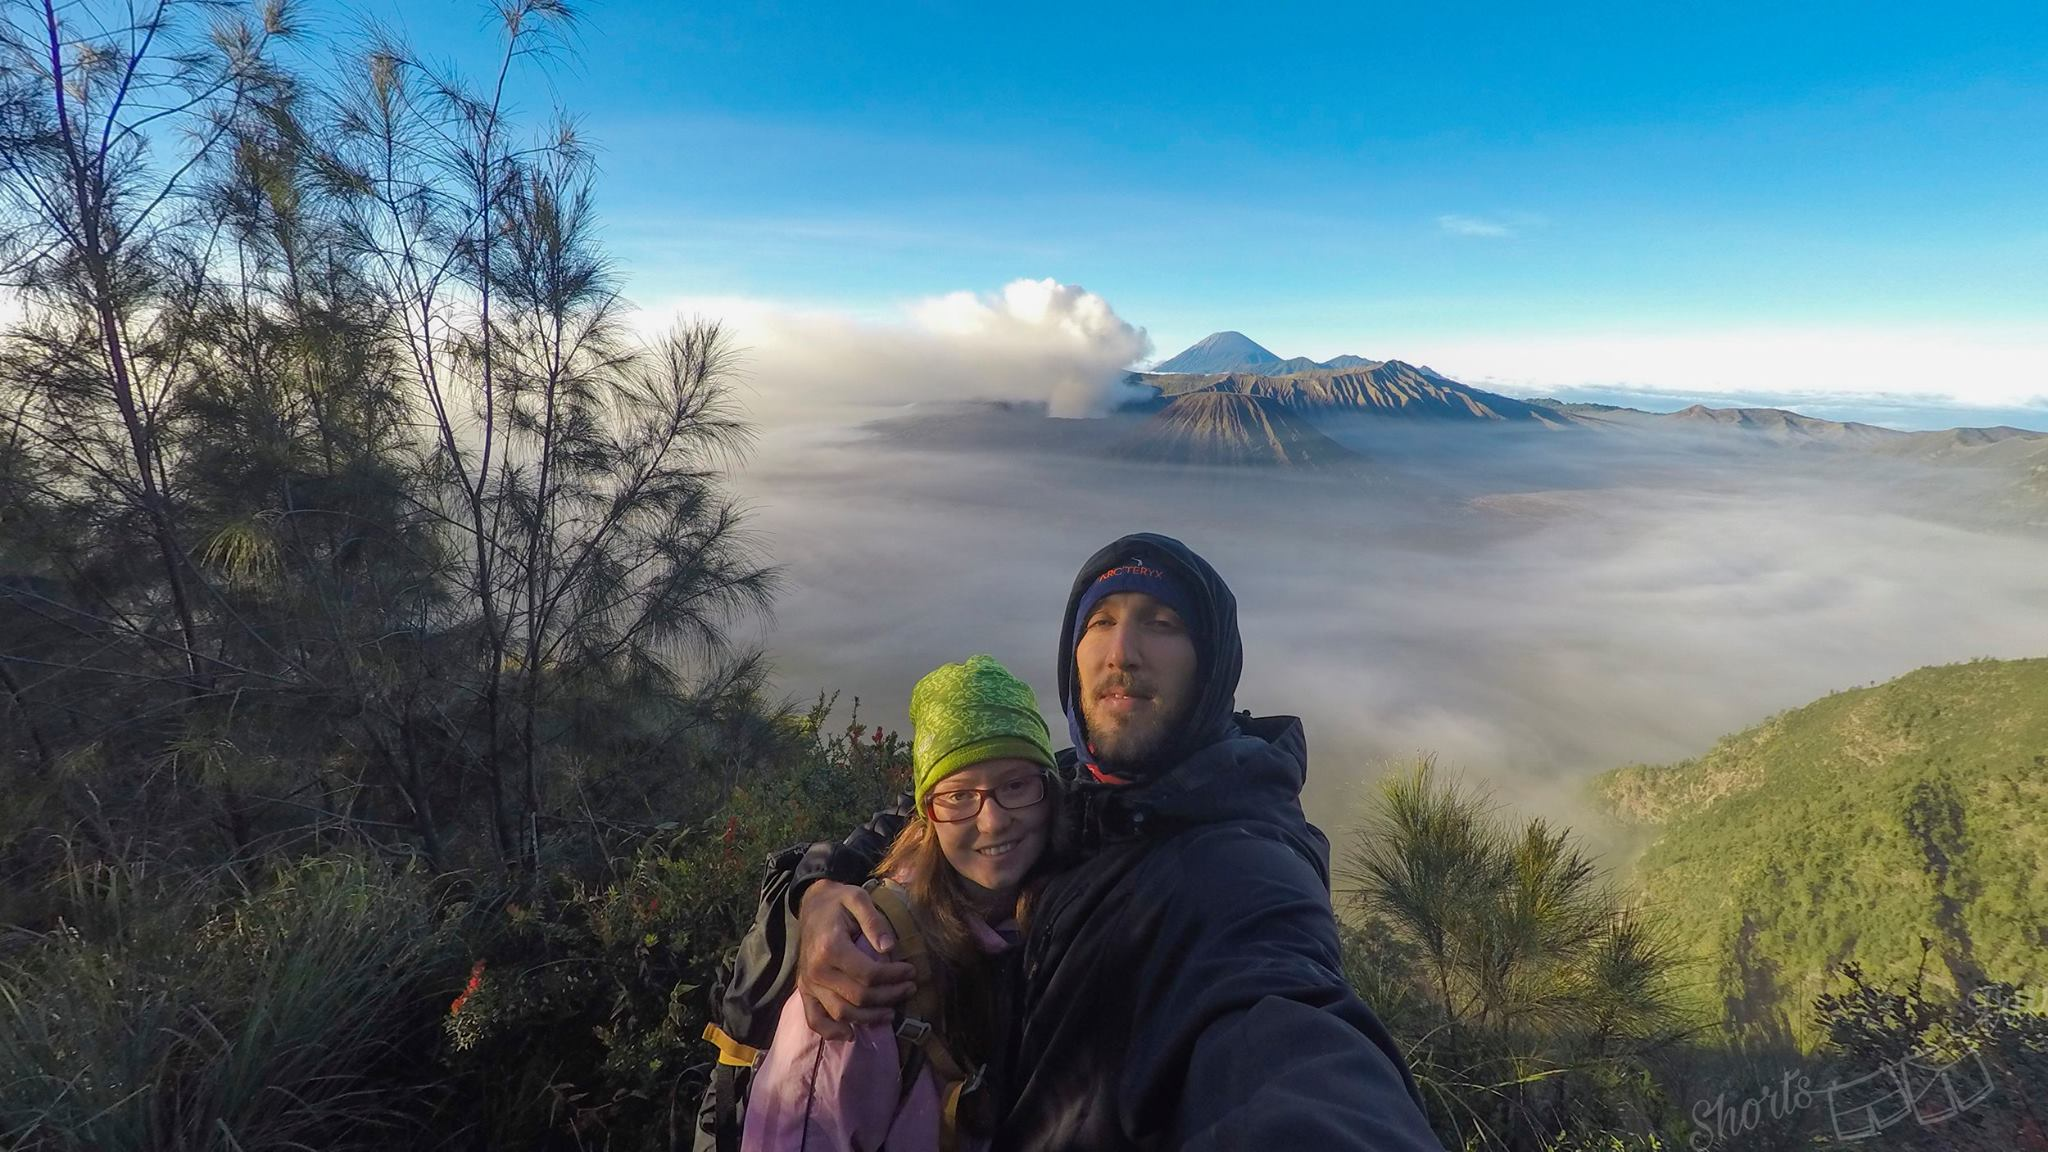 viewpoint bromo, private viewpoint bromo, secret viewpoint bromo, bromo best view, free view to bromo